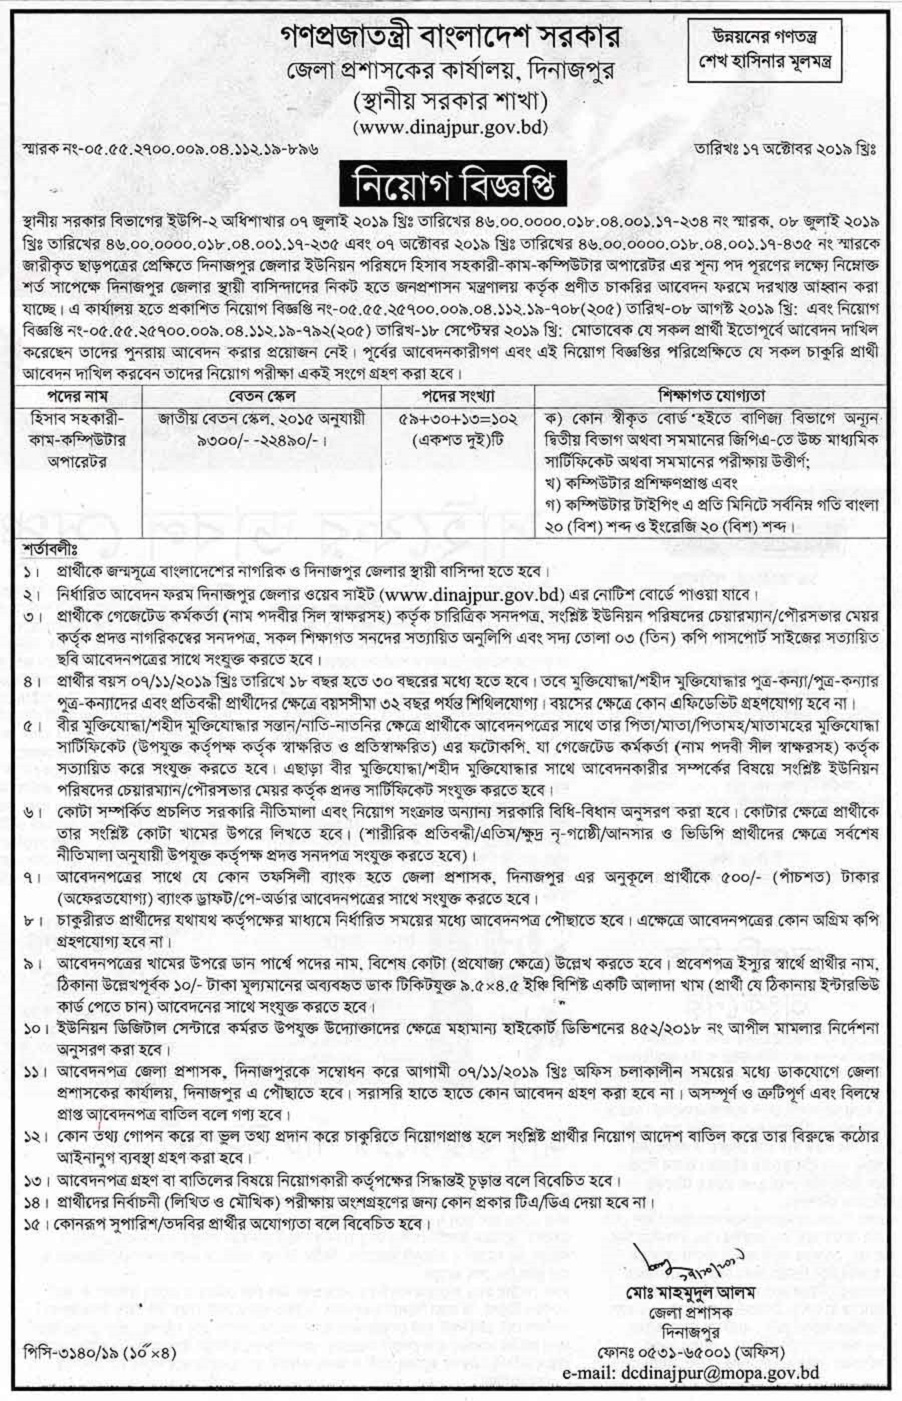 Dinajpur Deputy Commissioner's Office Job Circular 2019